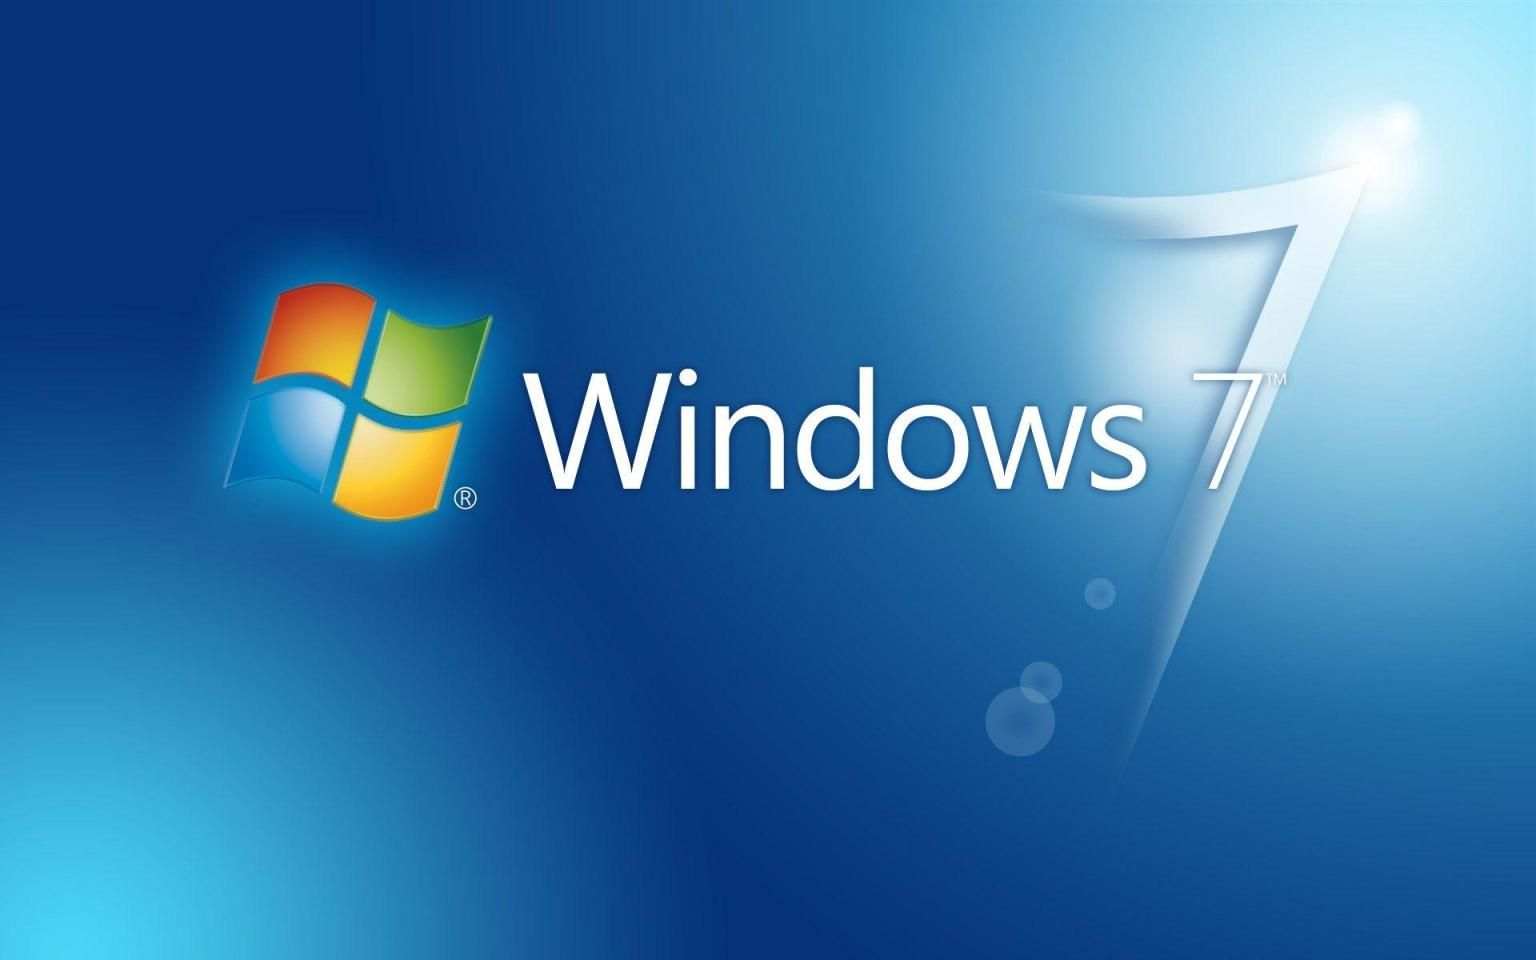 When Is The End Support For Windows 7 Windows Samsung Wallpaper Live Wallpapers